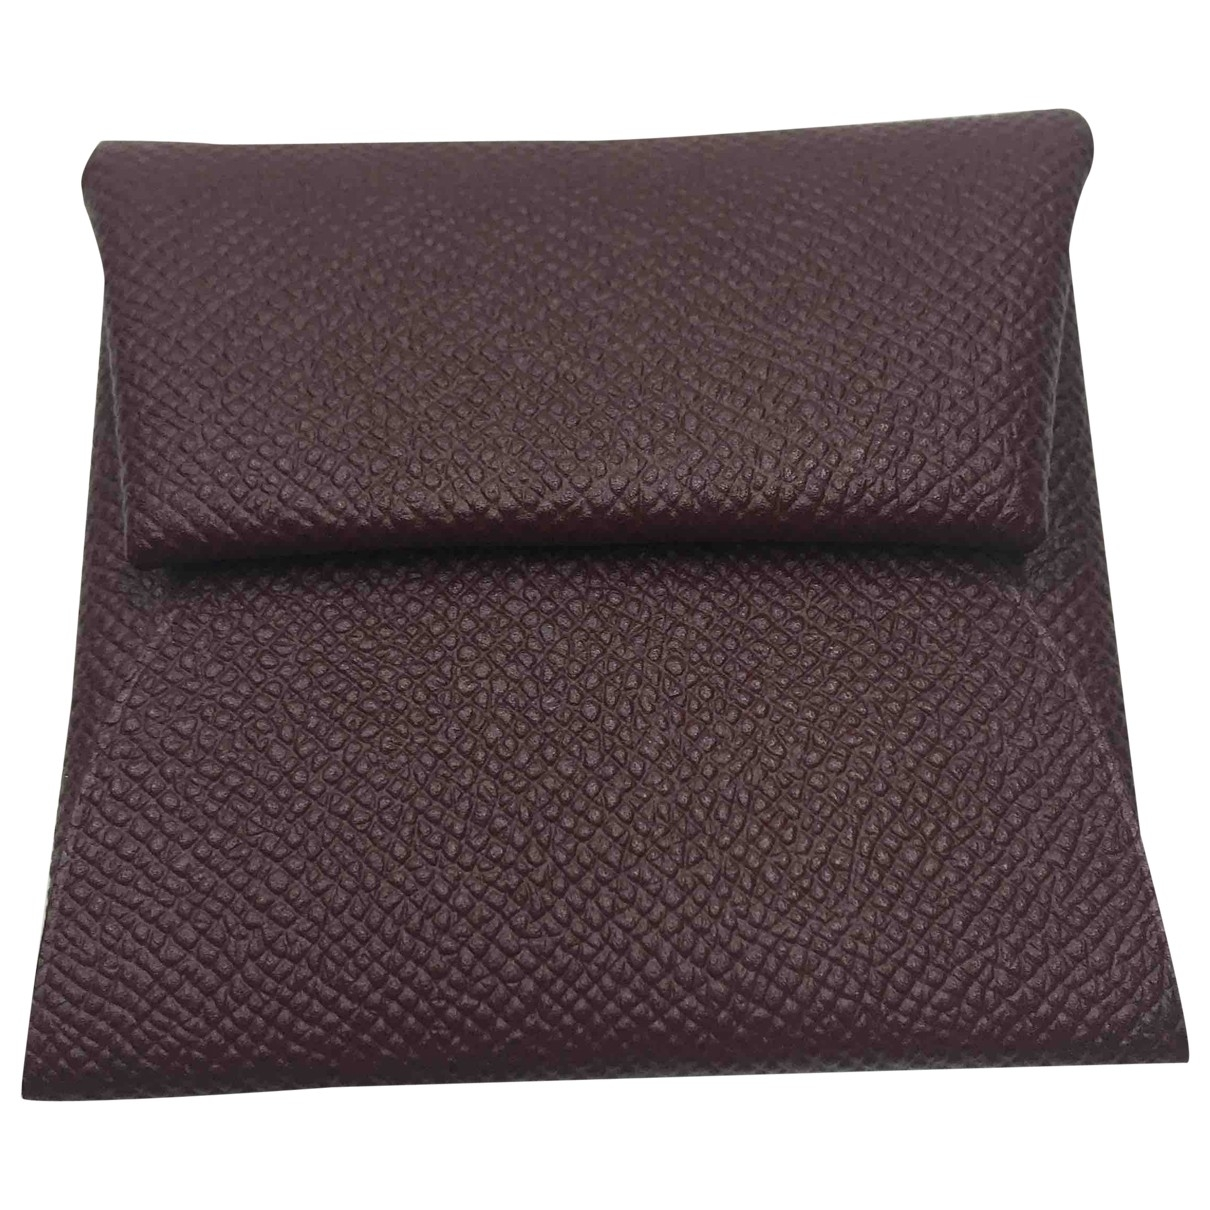 Hermès Bastia Brown Leather Purses, wallet & cases for Women \N